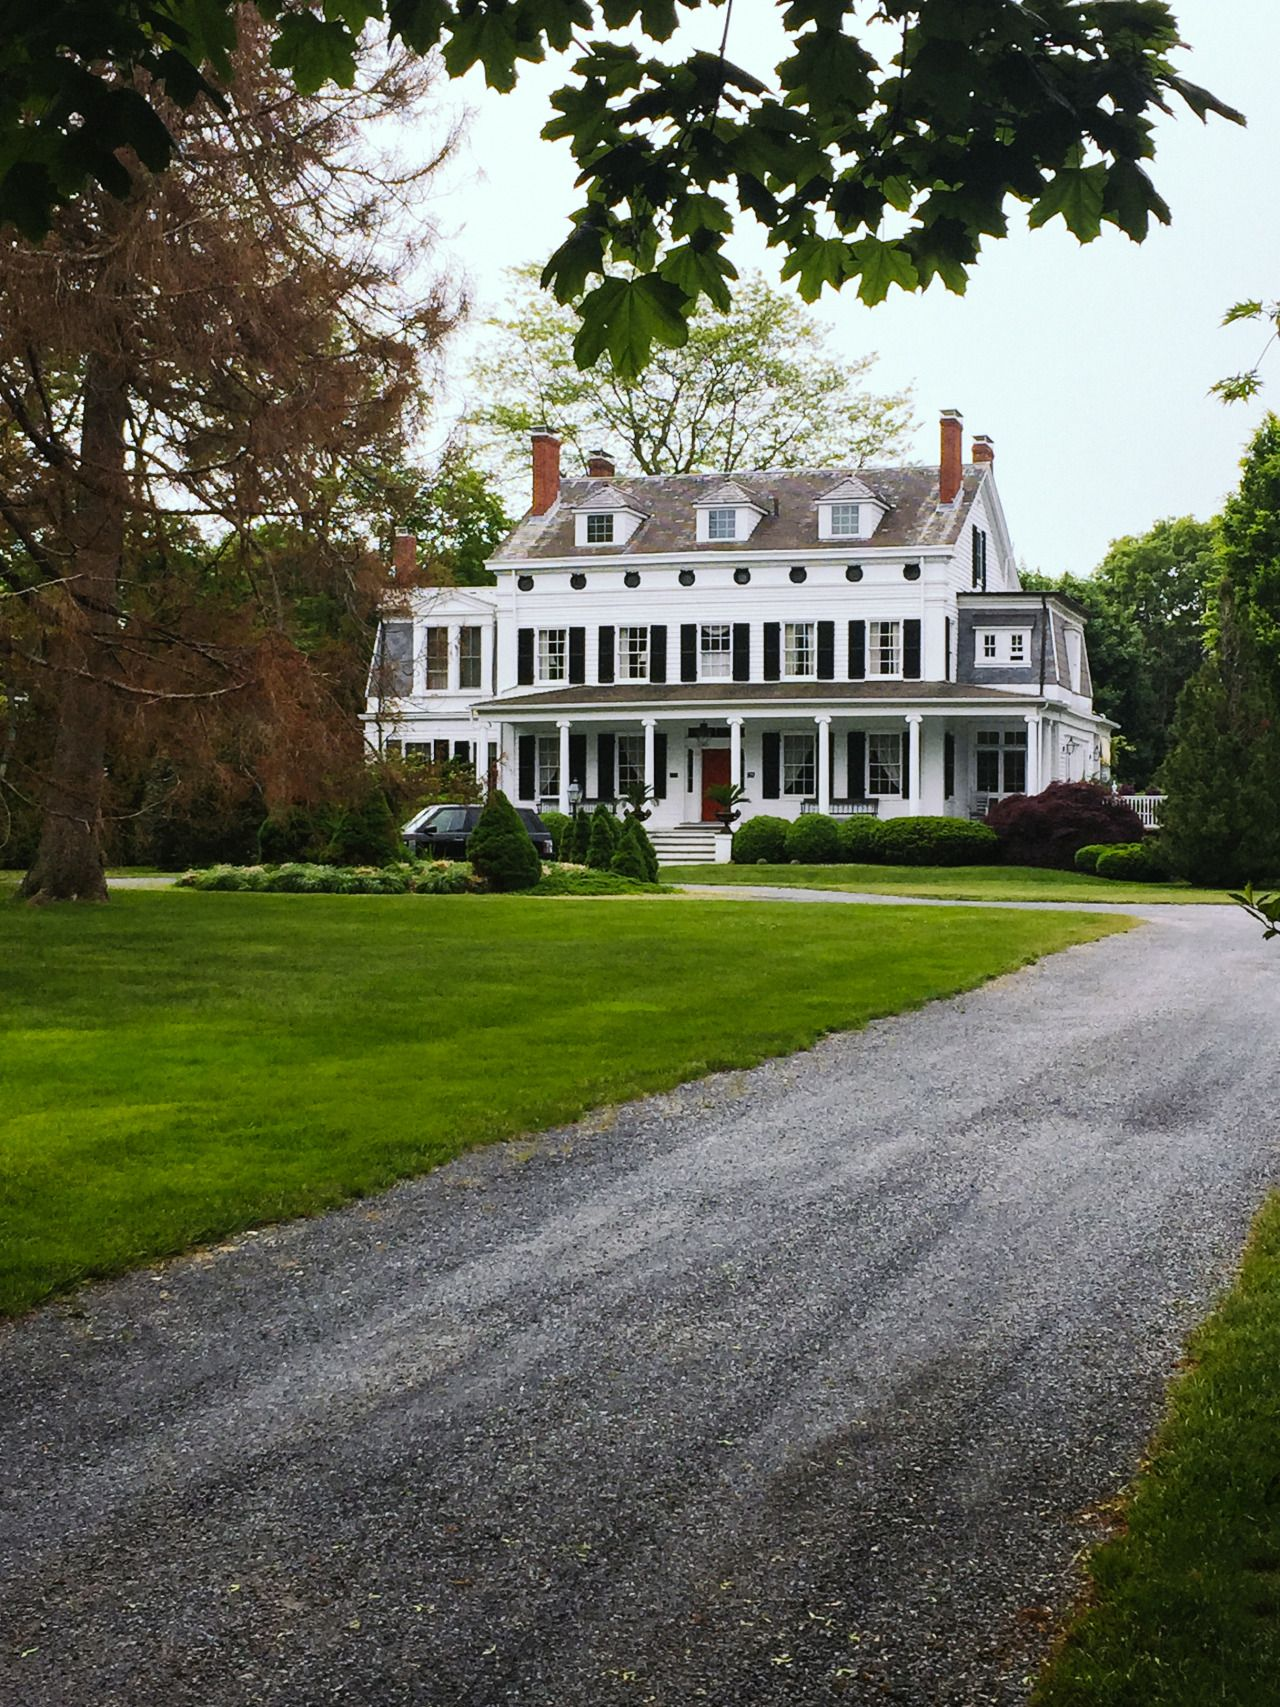 long gravel driveway, big front lawn, white colonial home